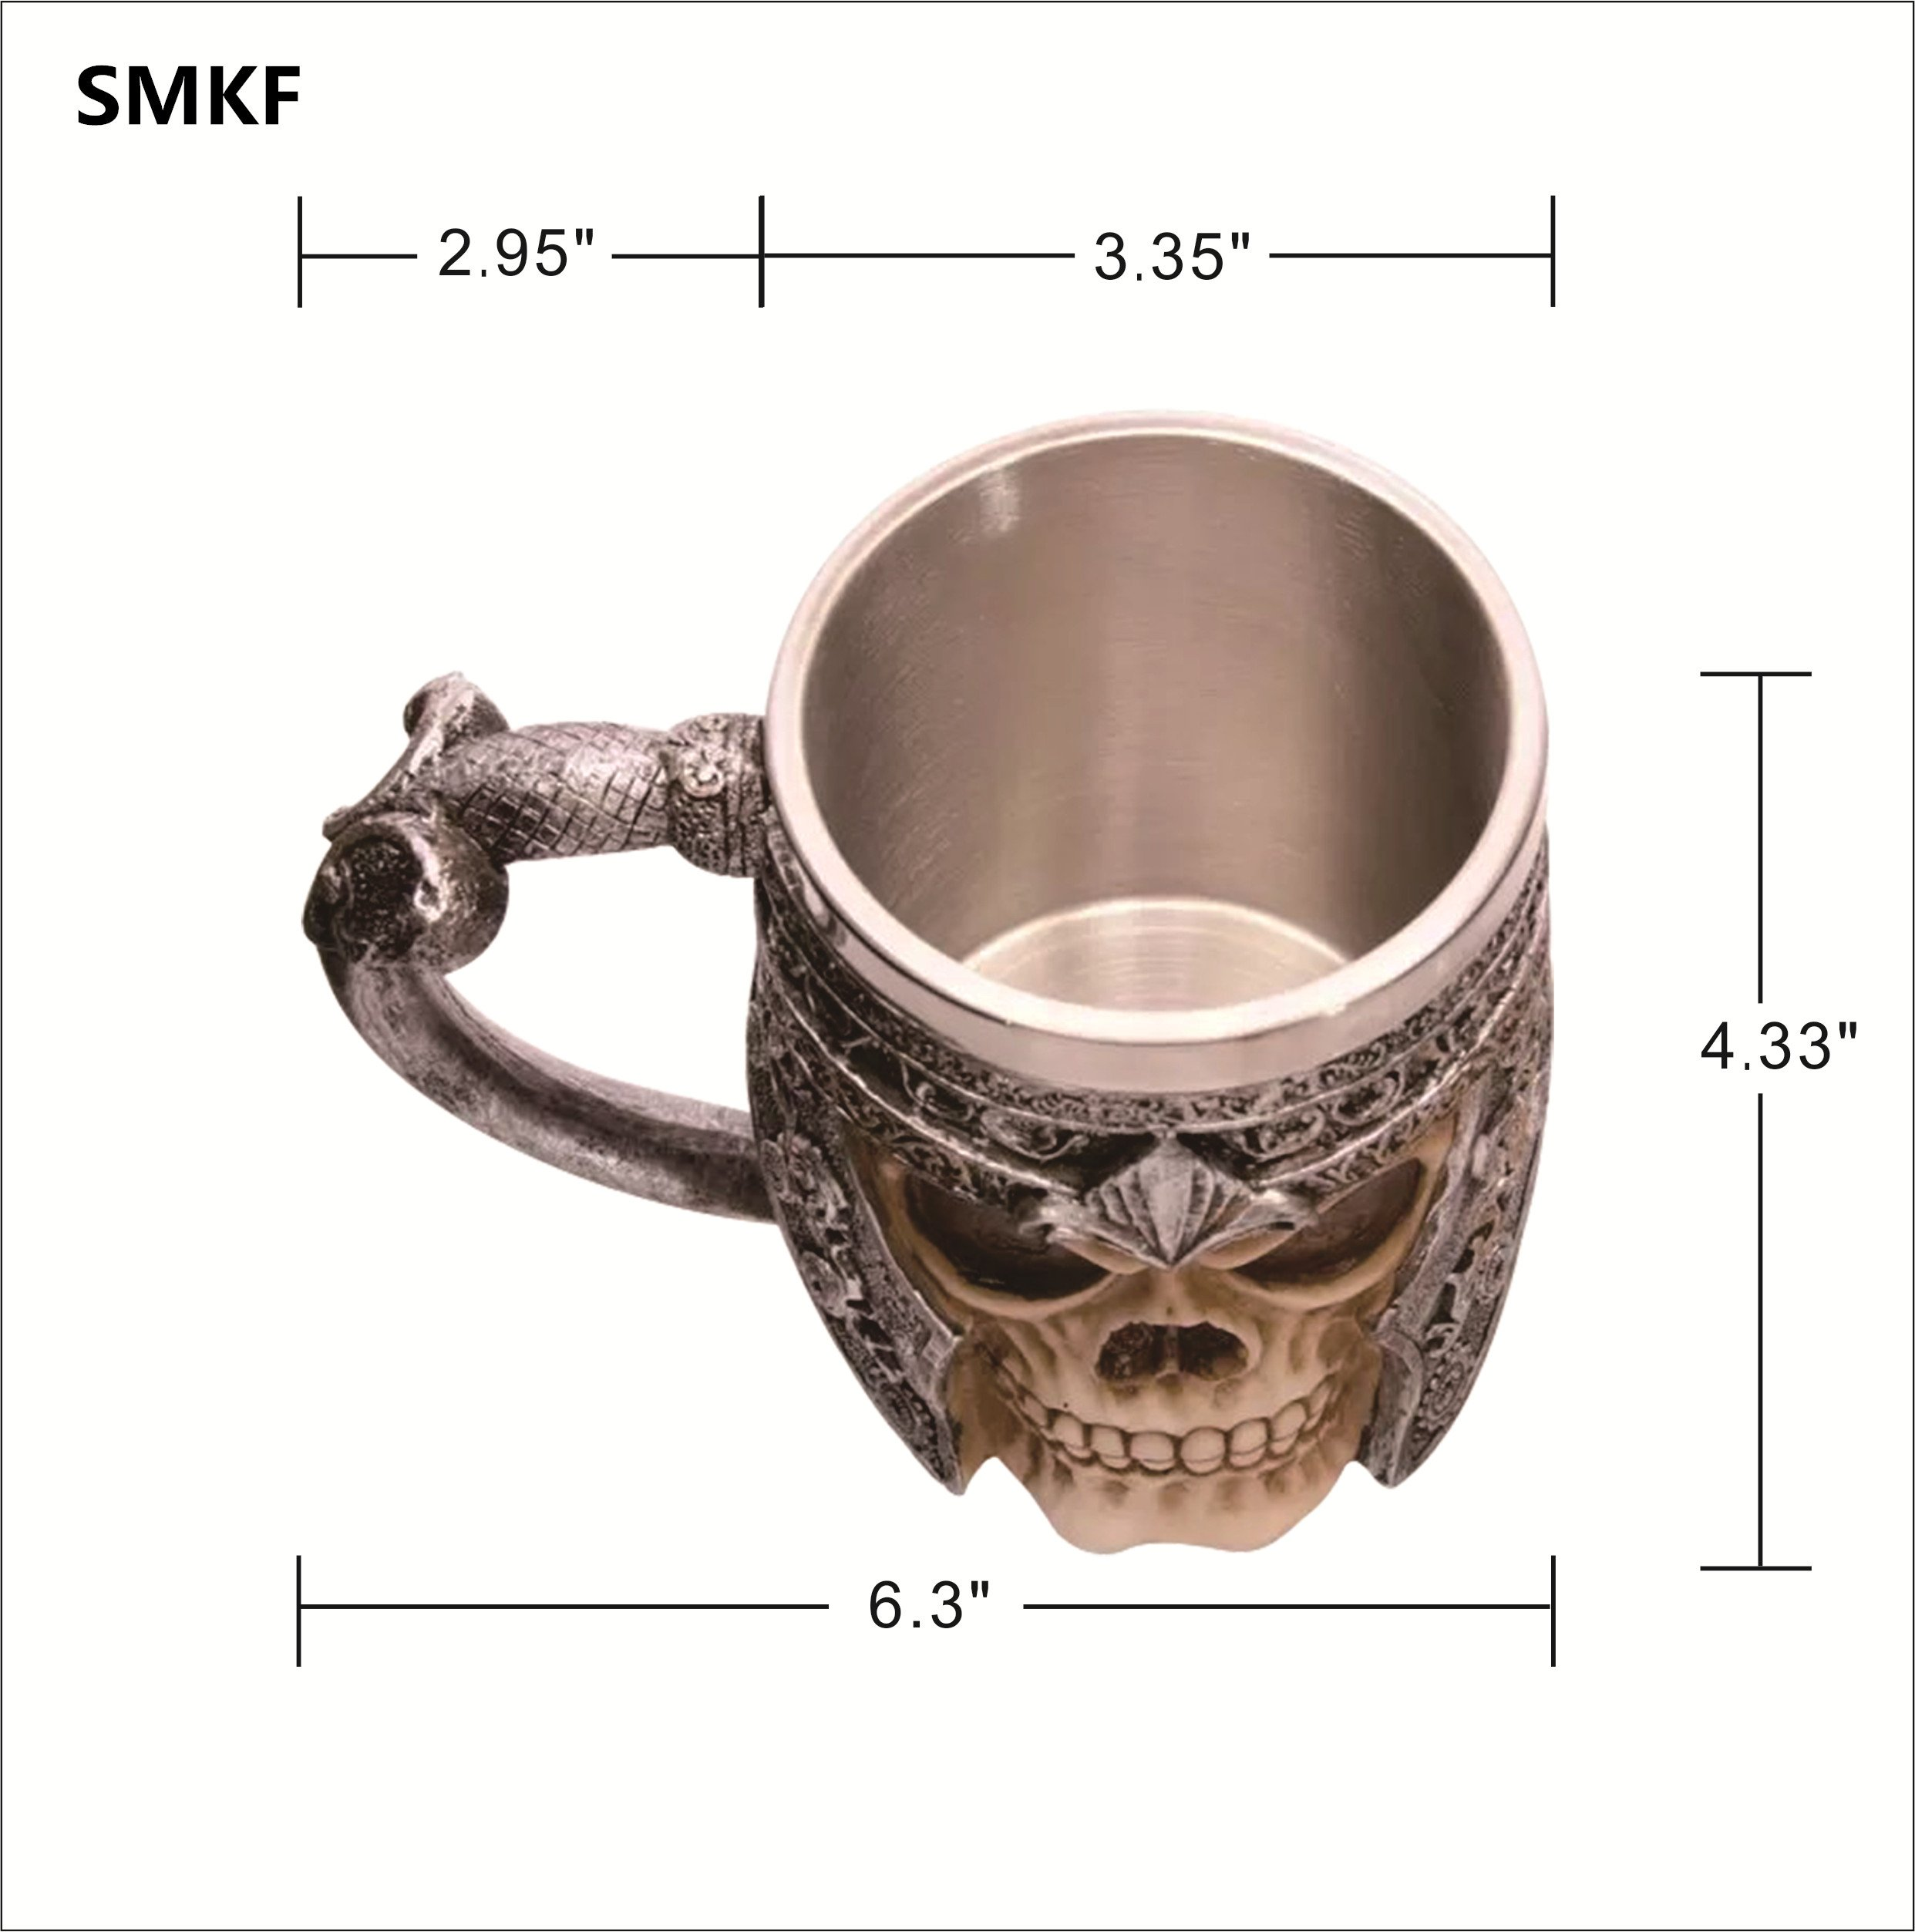 SMKF Stainless Steel Skull Coffee Mug For 3D Design